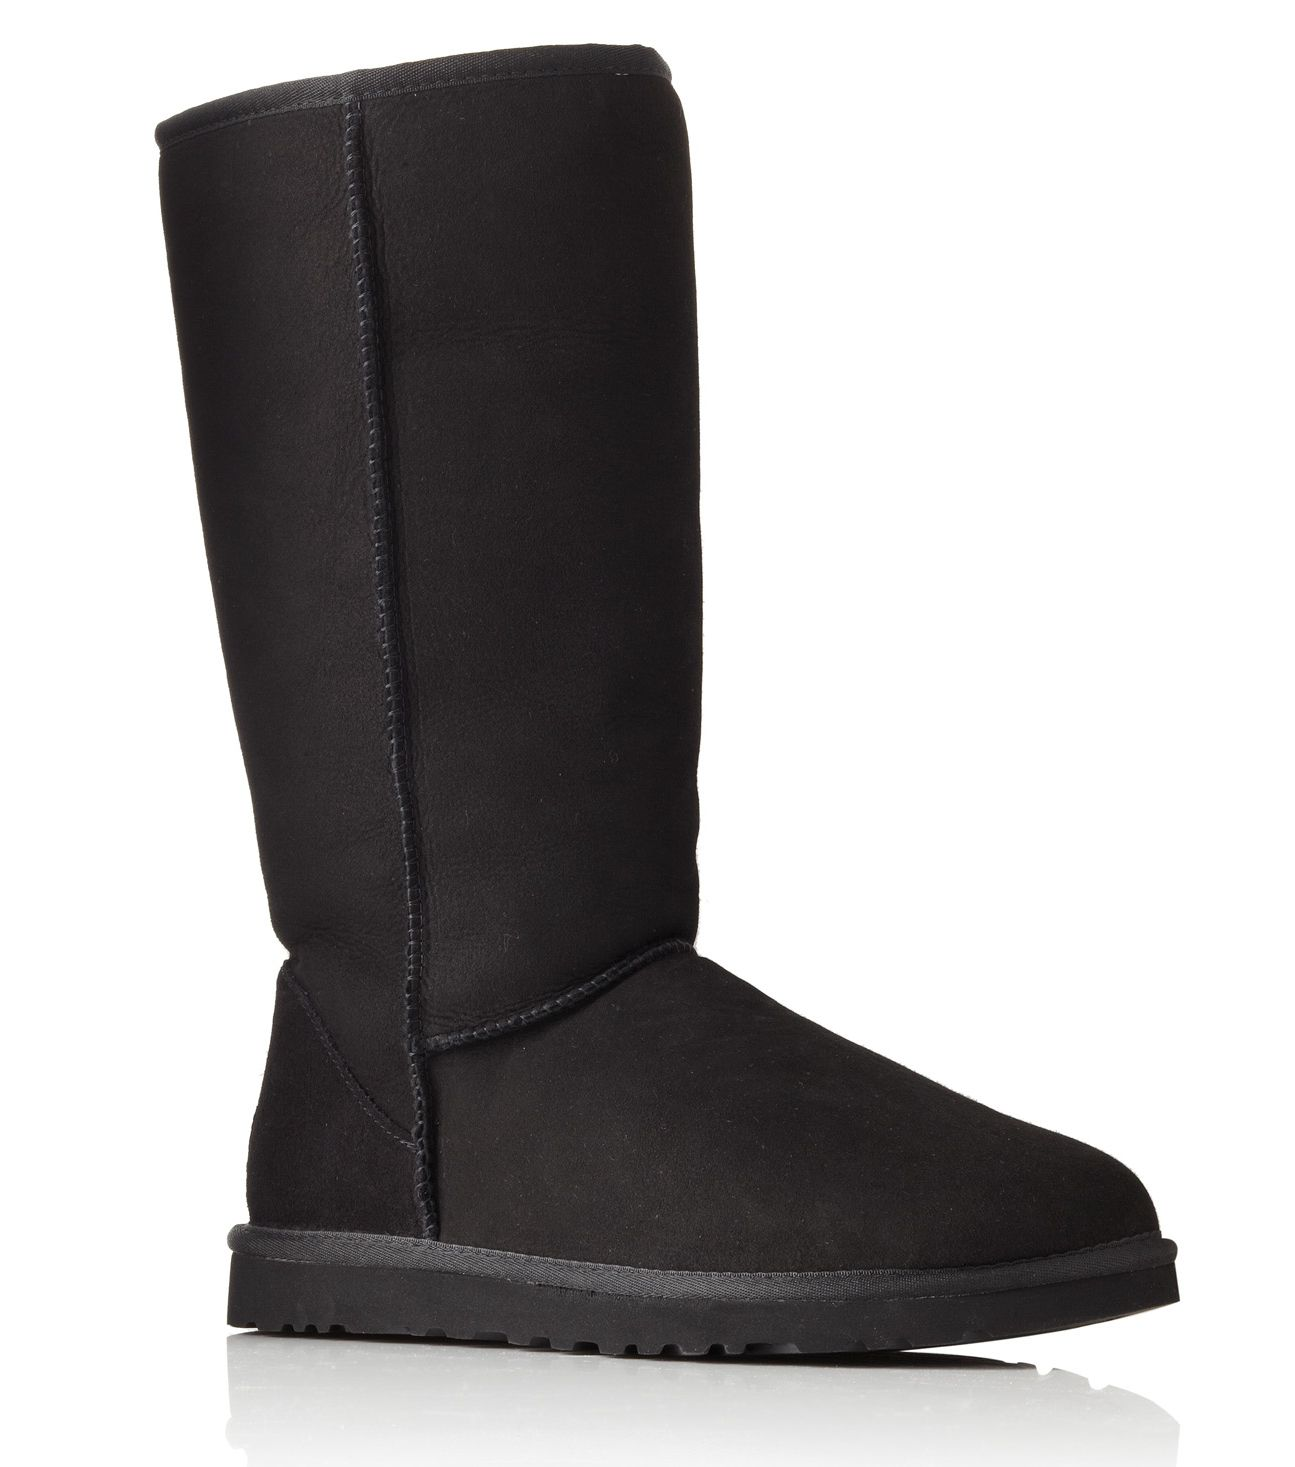 UGG Classic tall boots, Black - 30th gift